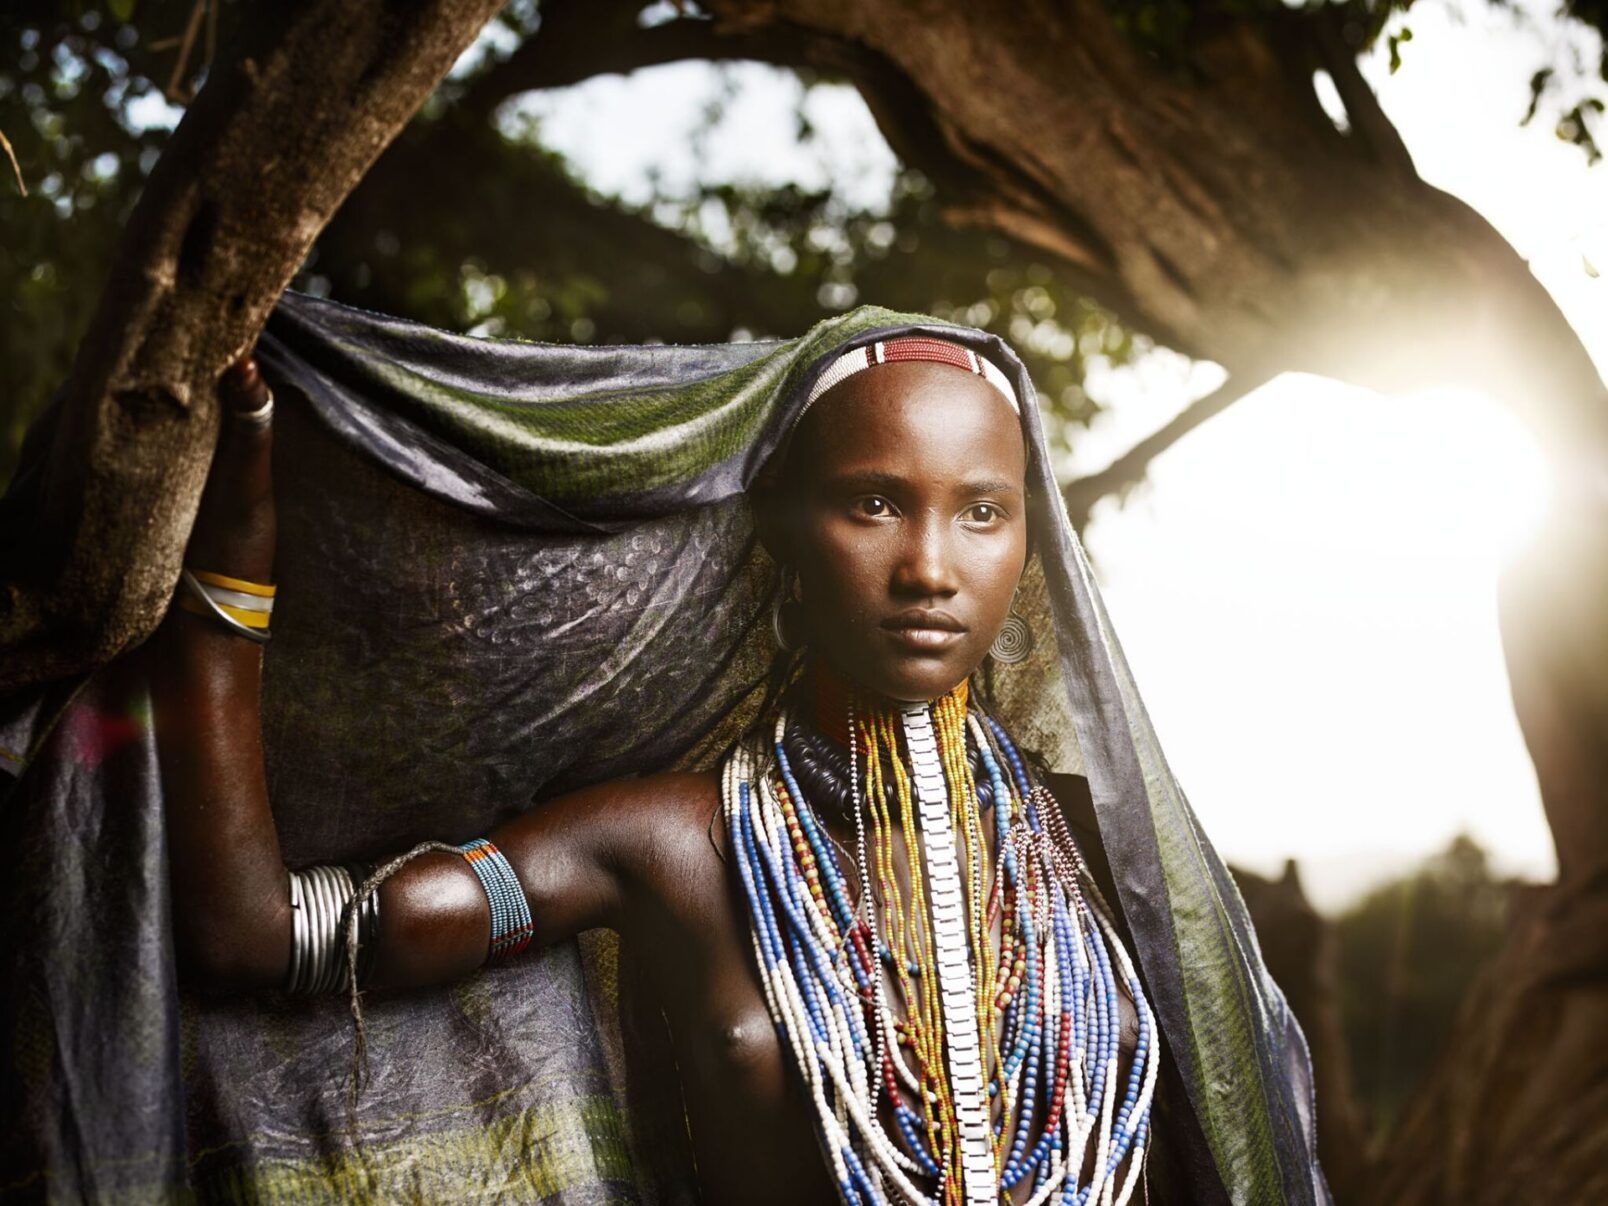 ethiopian girl with traditional dress in the Omo Valley by Joey L.